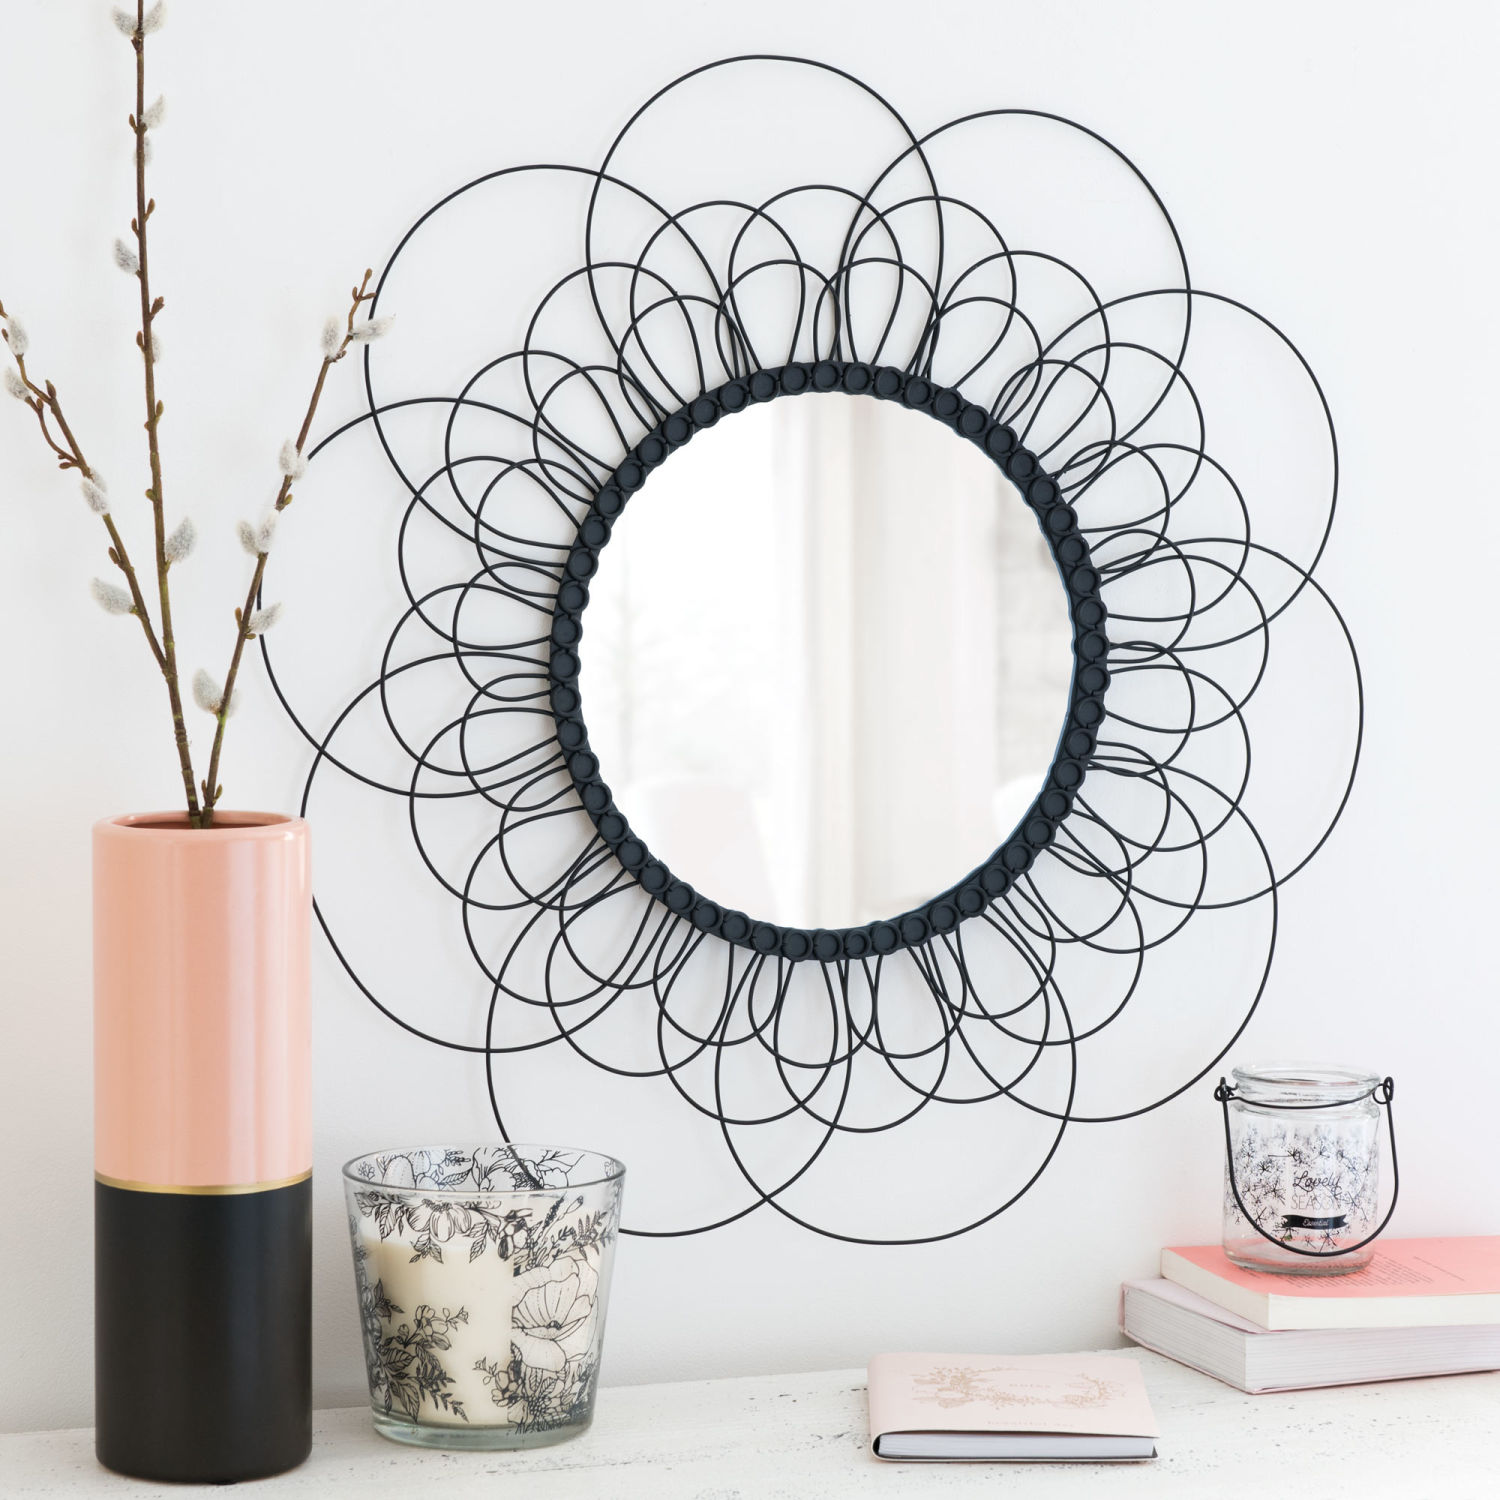 miroir rond en m tal noir d60 maisons du monde. Black Bedroom Furniture Sets. Home Design Ideas